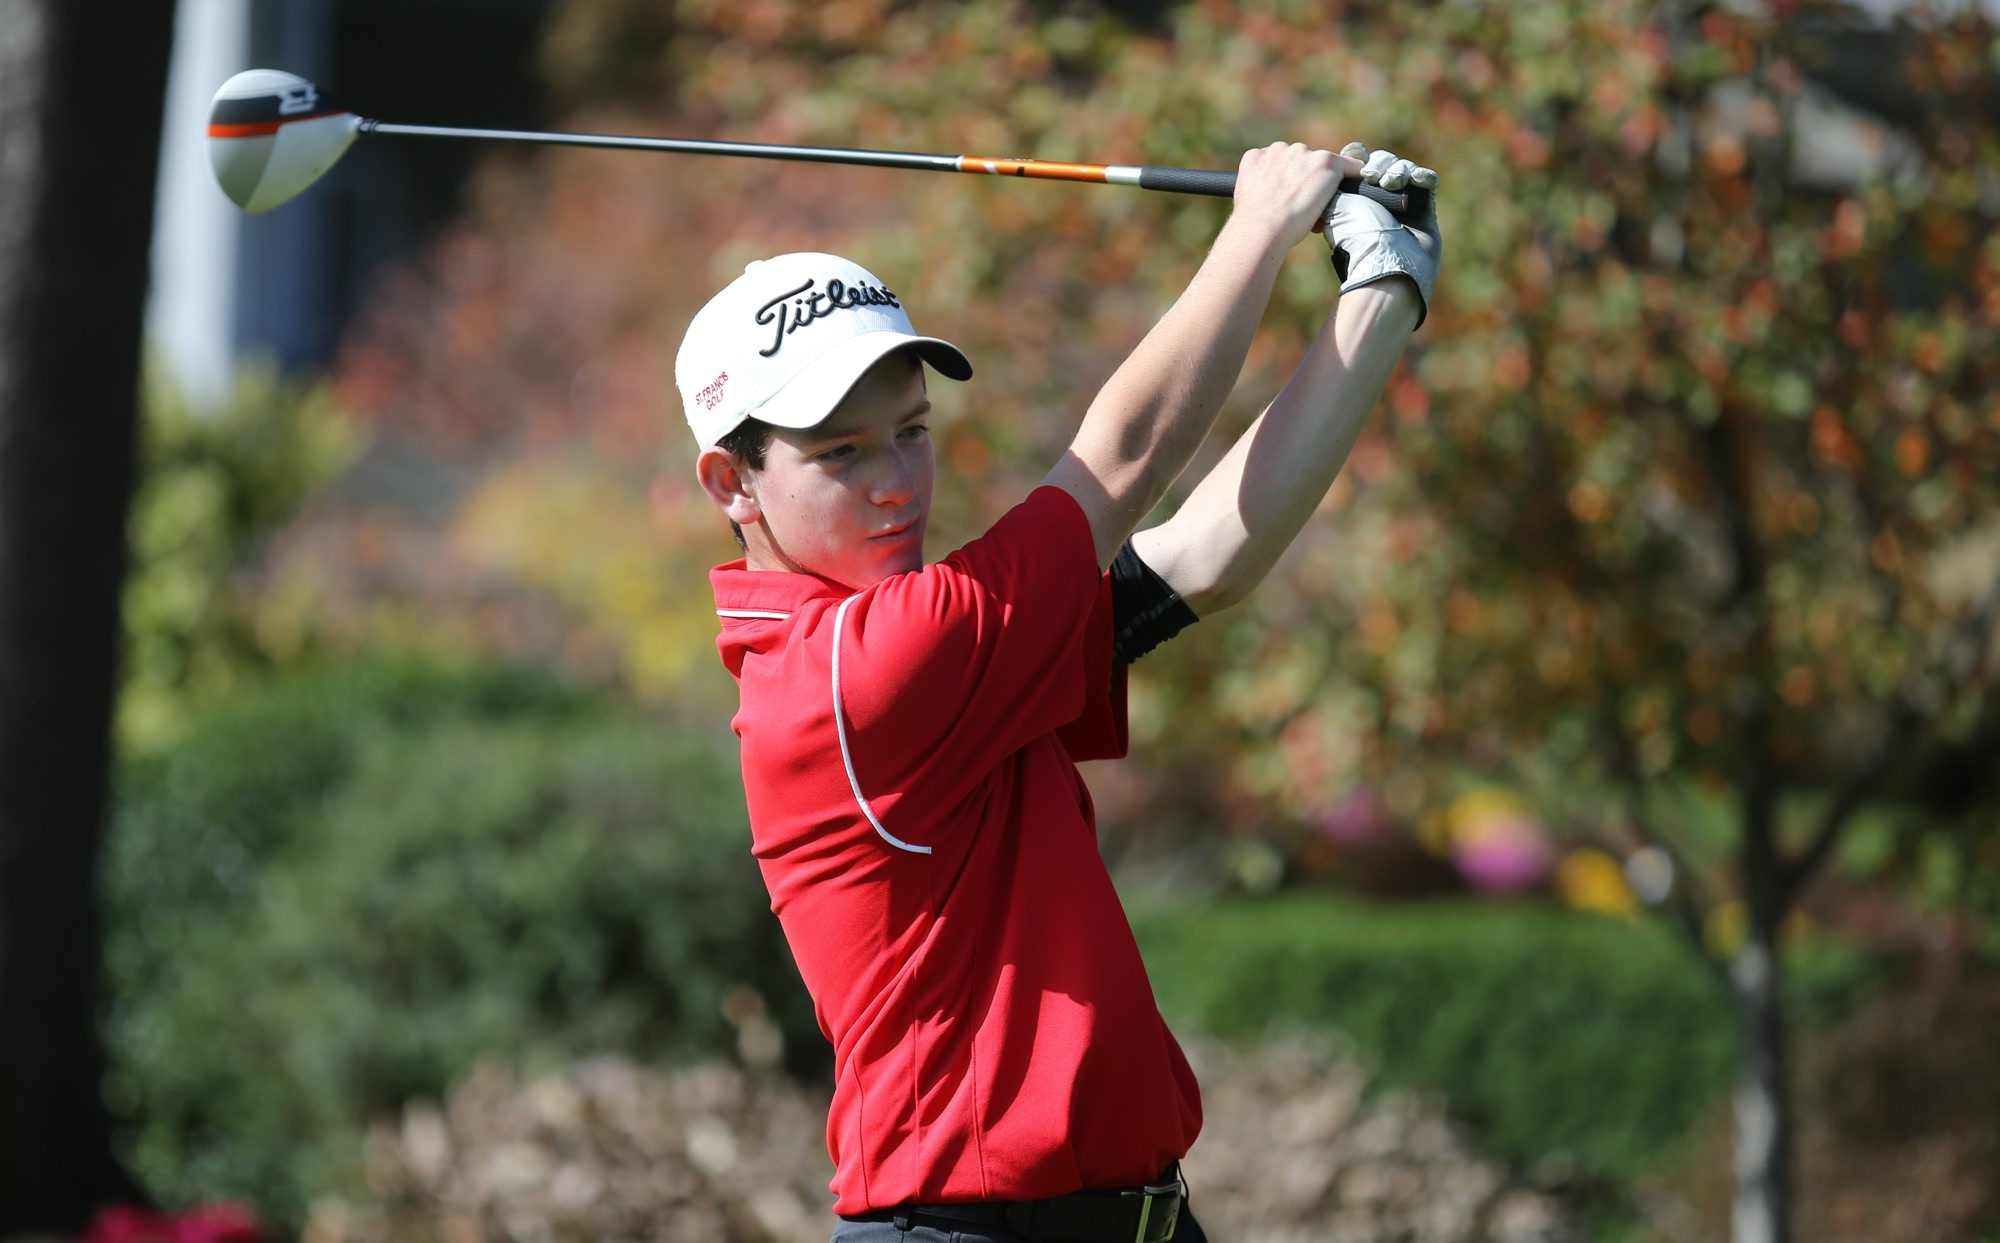 St. Francis' David Hanes fired a 35 on the back nine Monday.